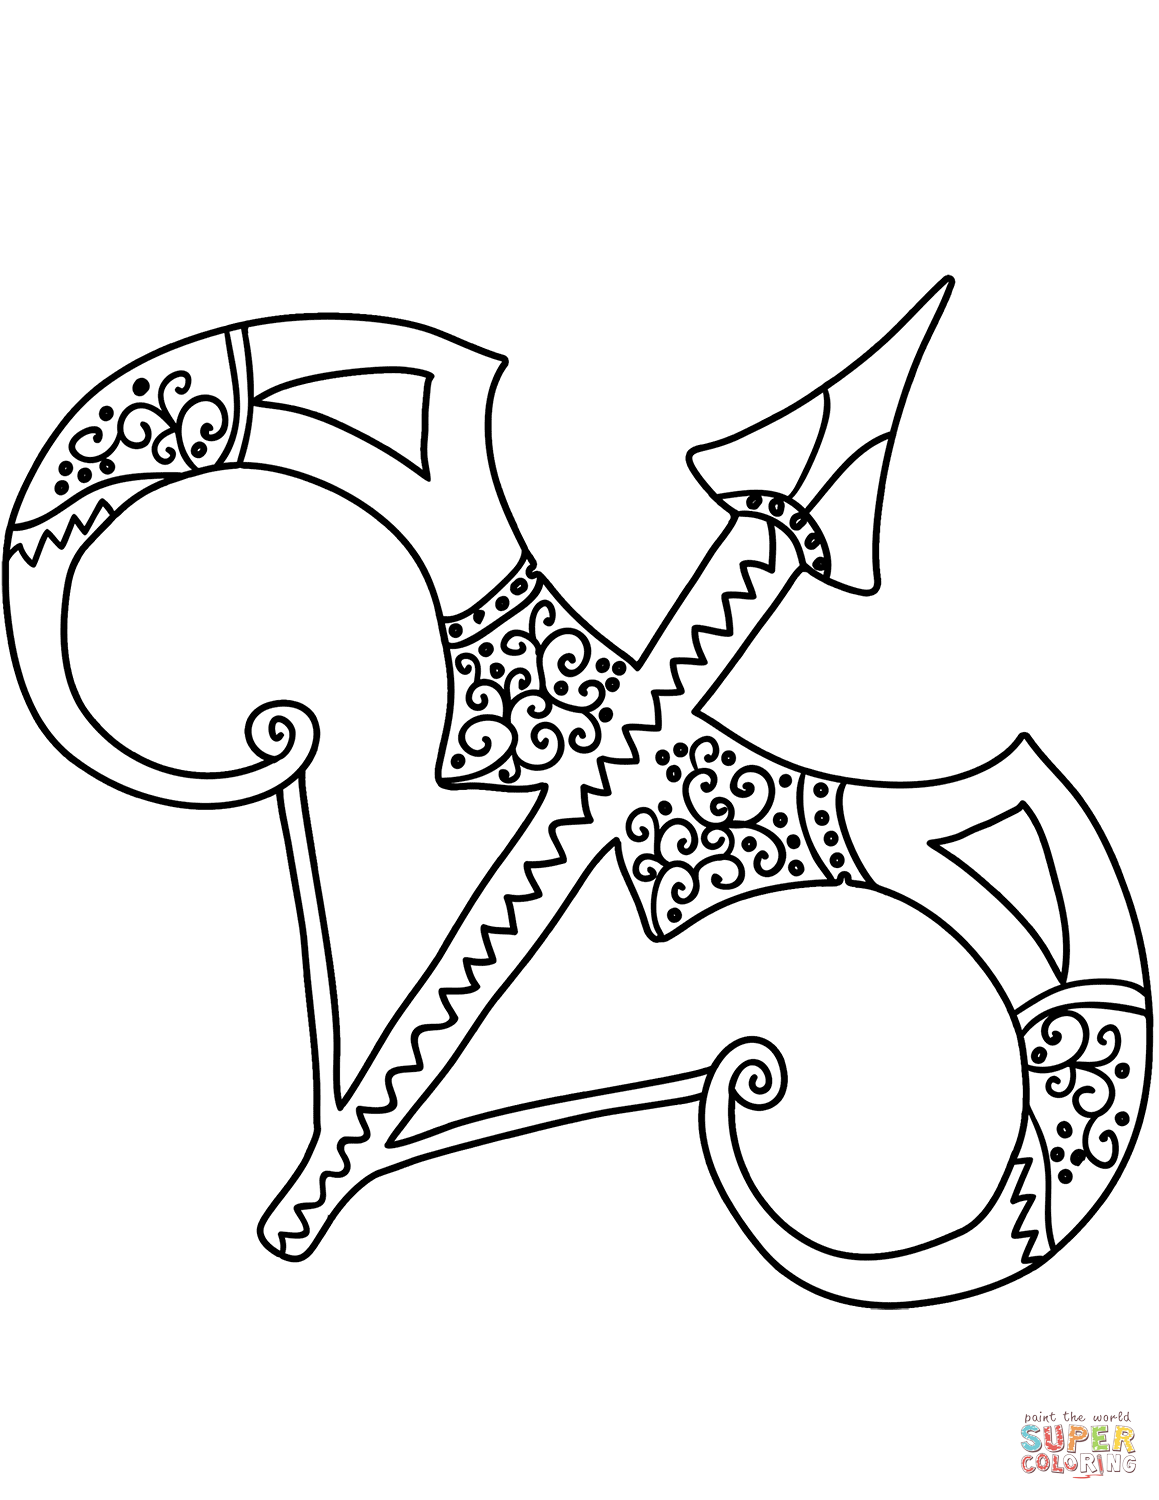 zodiac coloring pages sagittarius zodiac sign coloring page free printable coloring zodiac pages